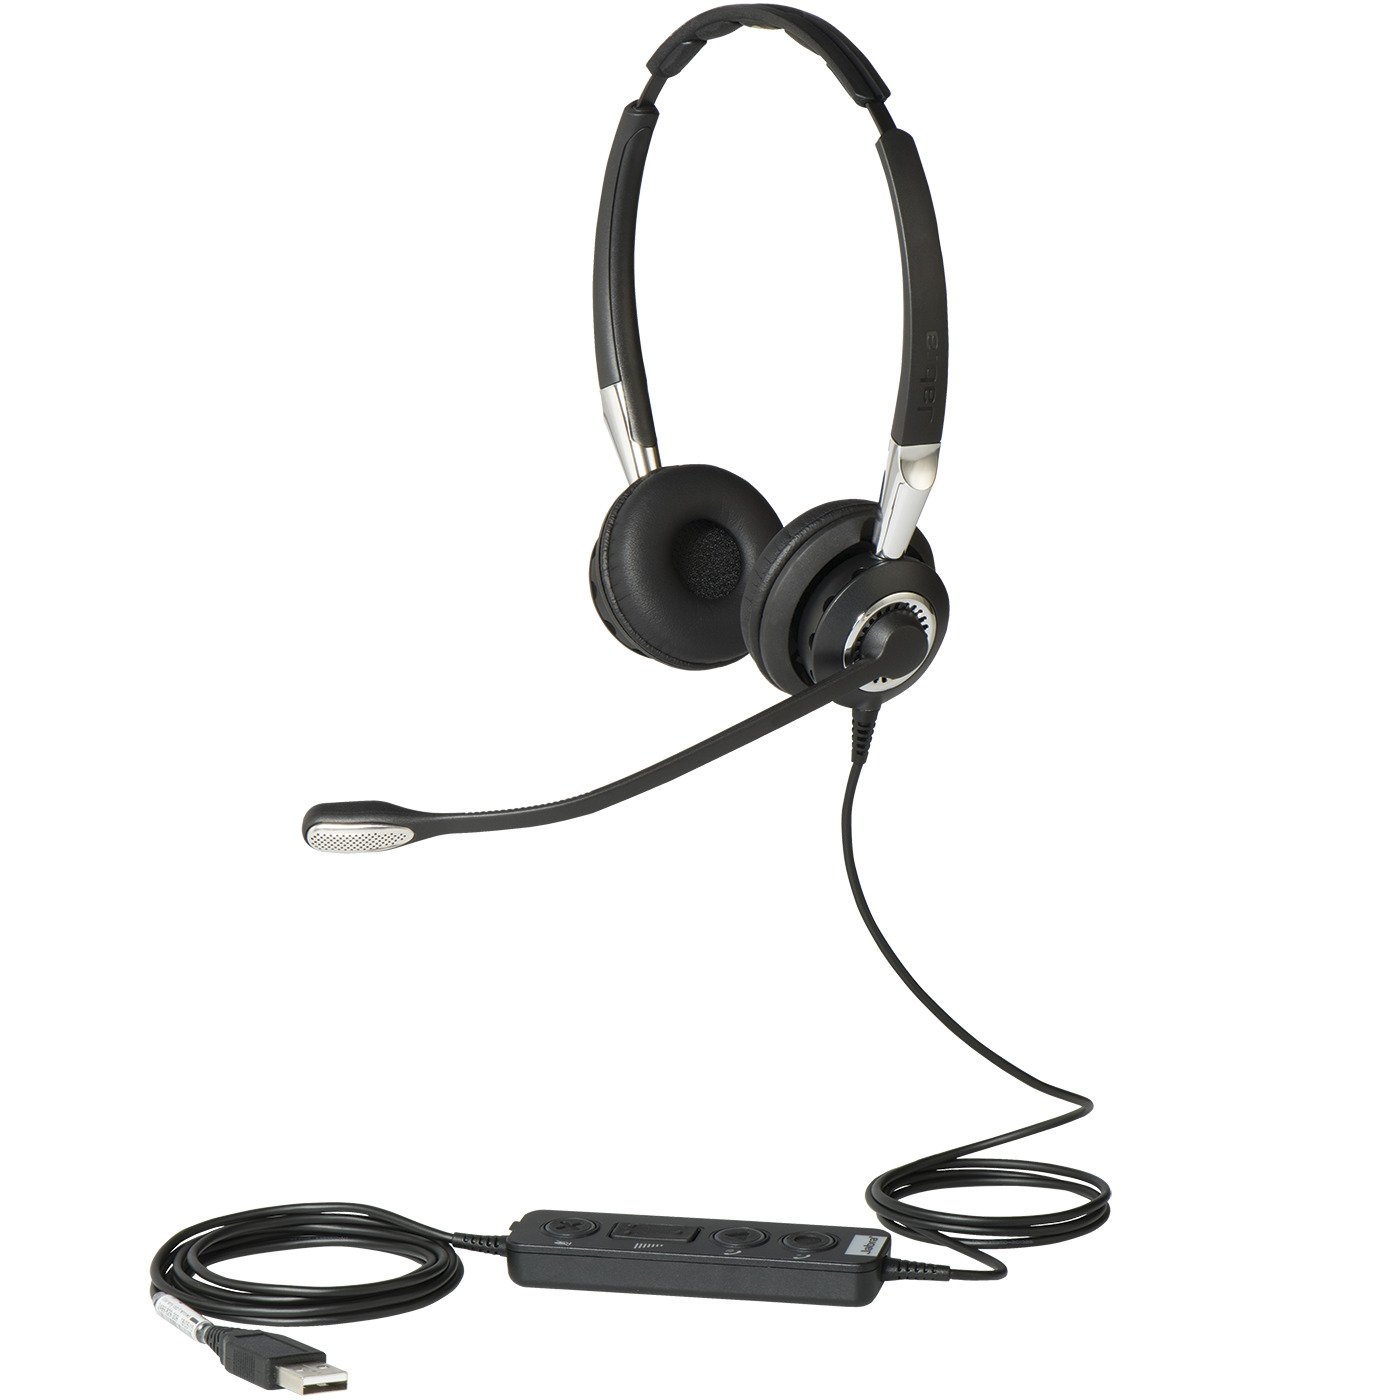 Jabra 2400 II USB DUO CC Wired Headset - Black by Jabra (Image #1)